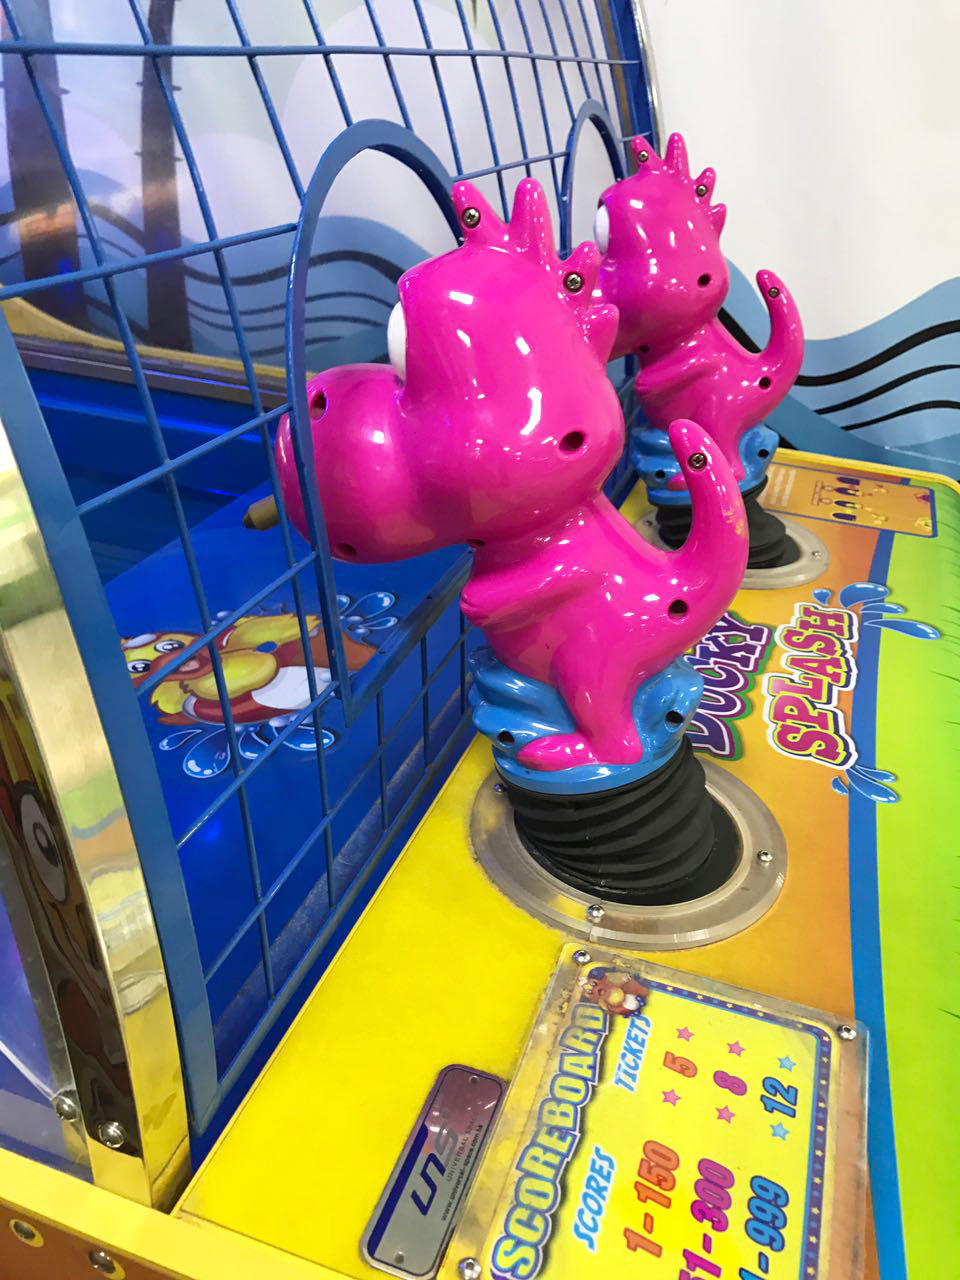 Duck splash redemption game machine animal cover spare parts ,coin operated , arcage games baby air hockey coin operated ticket redemption games for play center